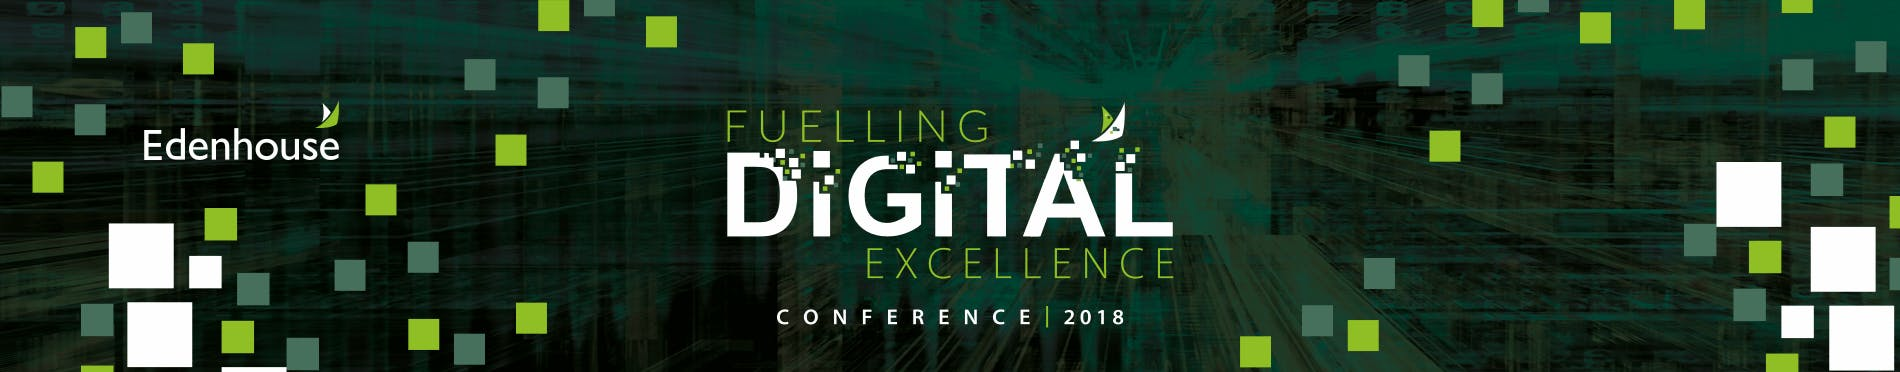 Fuelling Digital Excellence